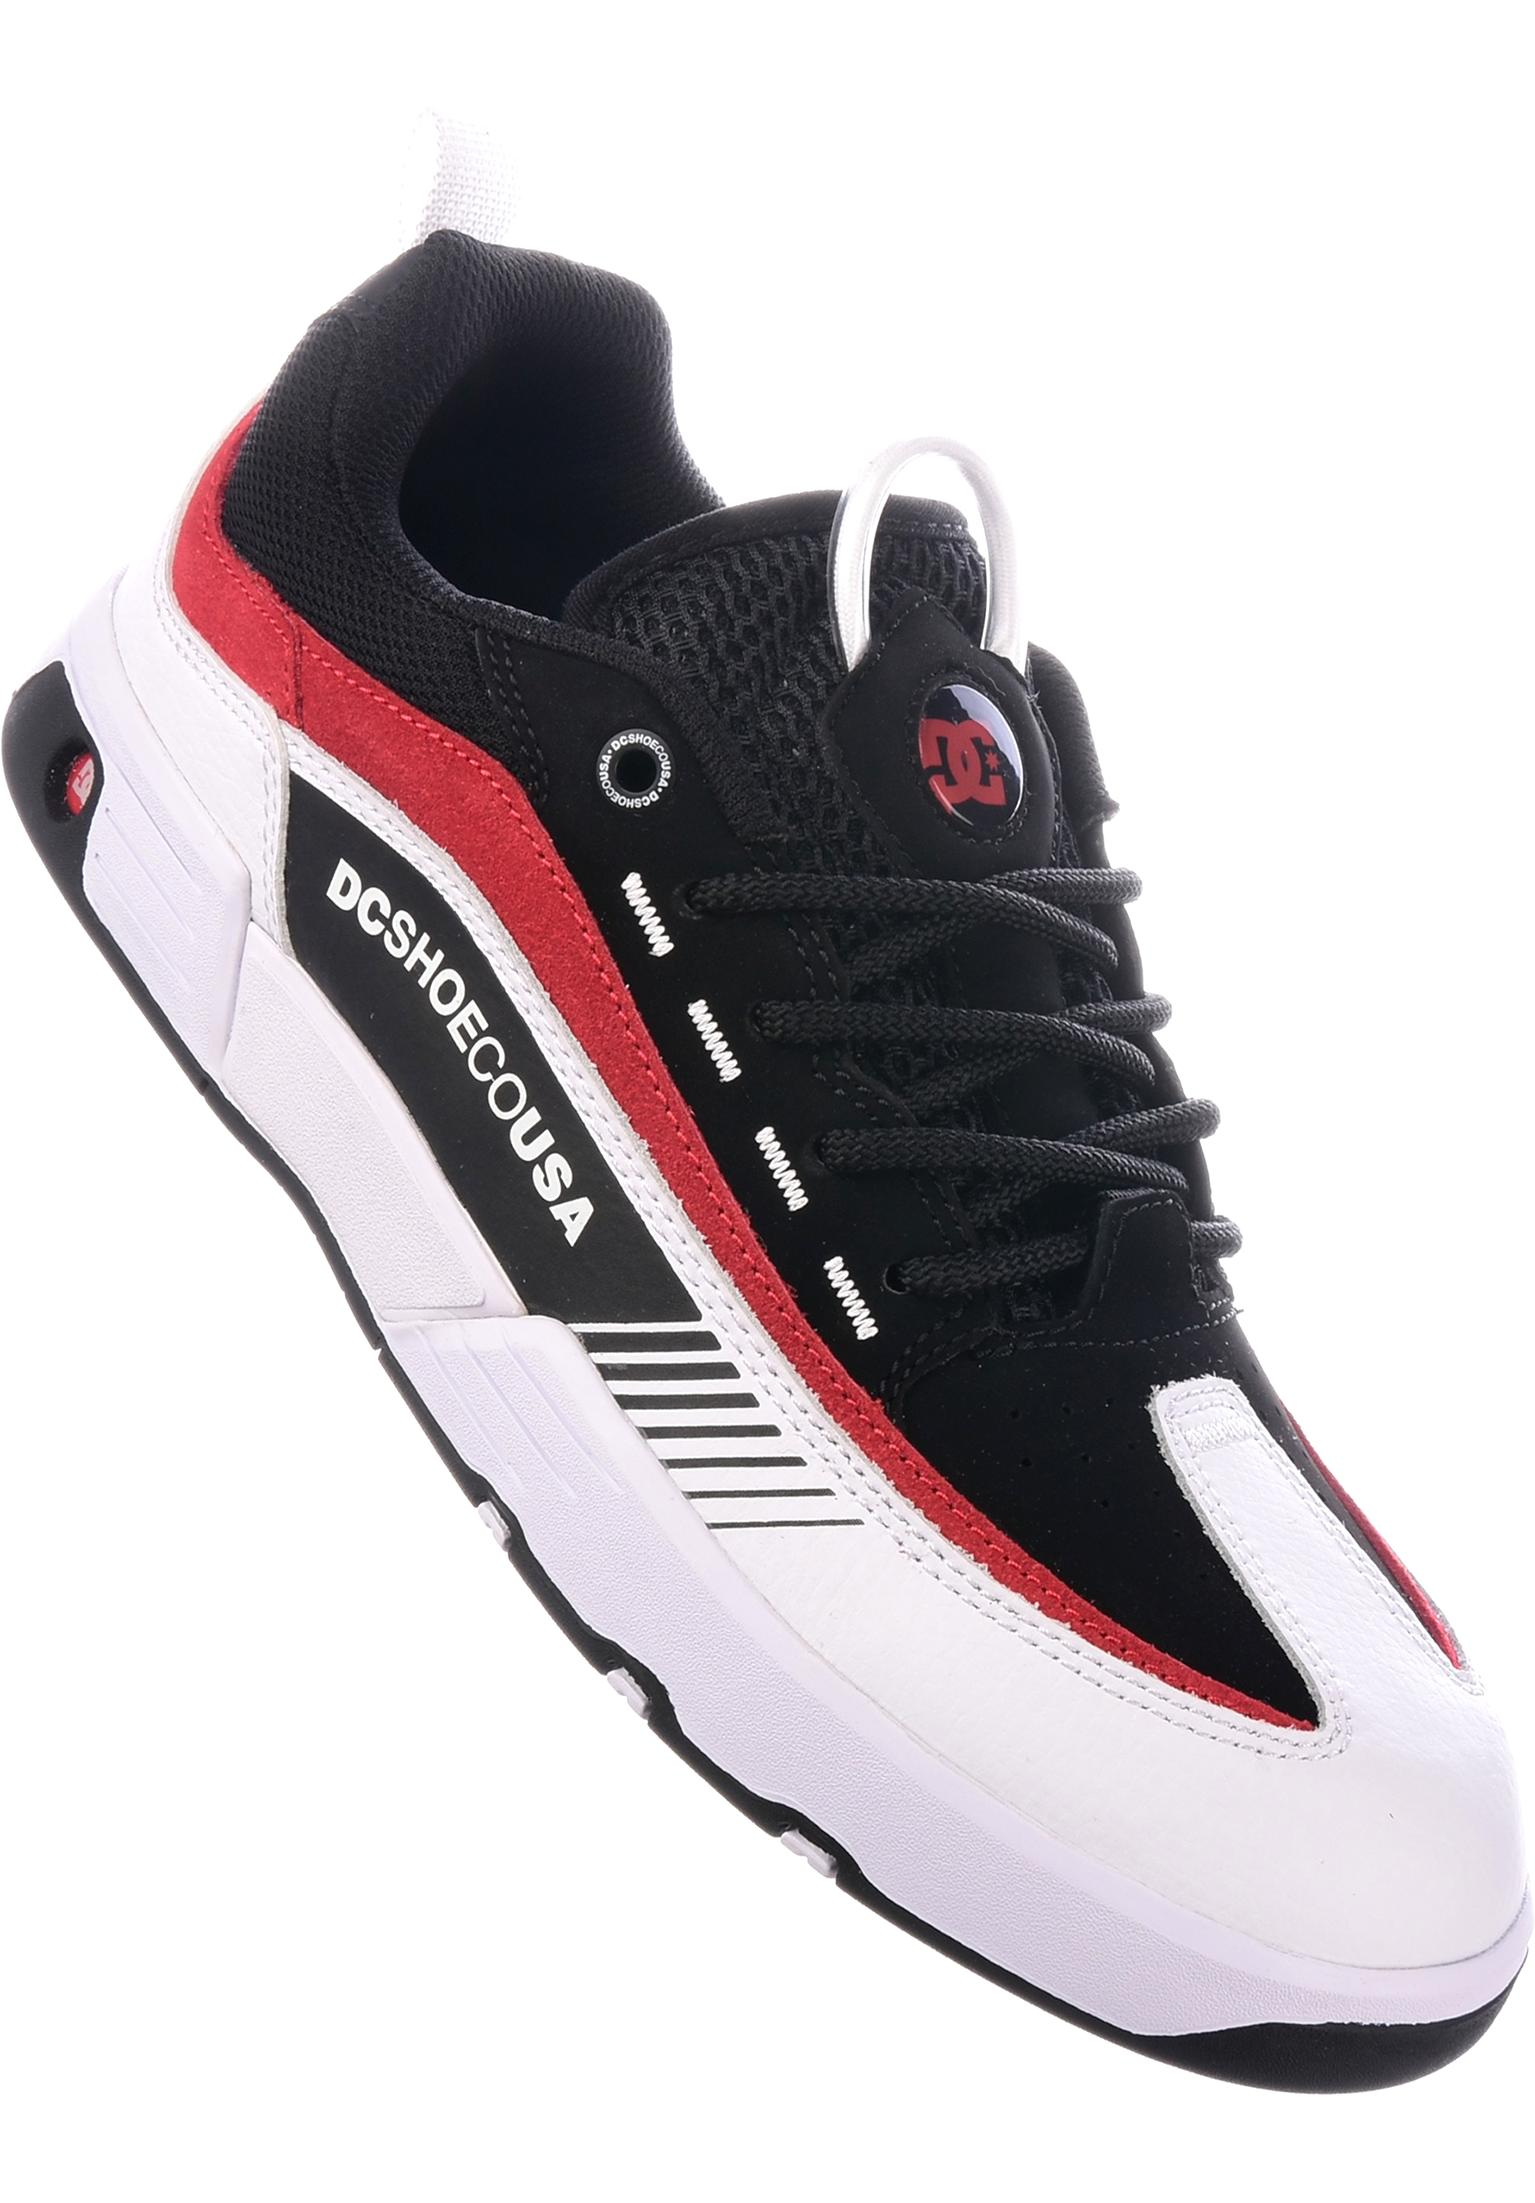 3b74c05e04 Legacy 98 Slim DC Shoes All Shoes in black-white-red for Men | Titus